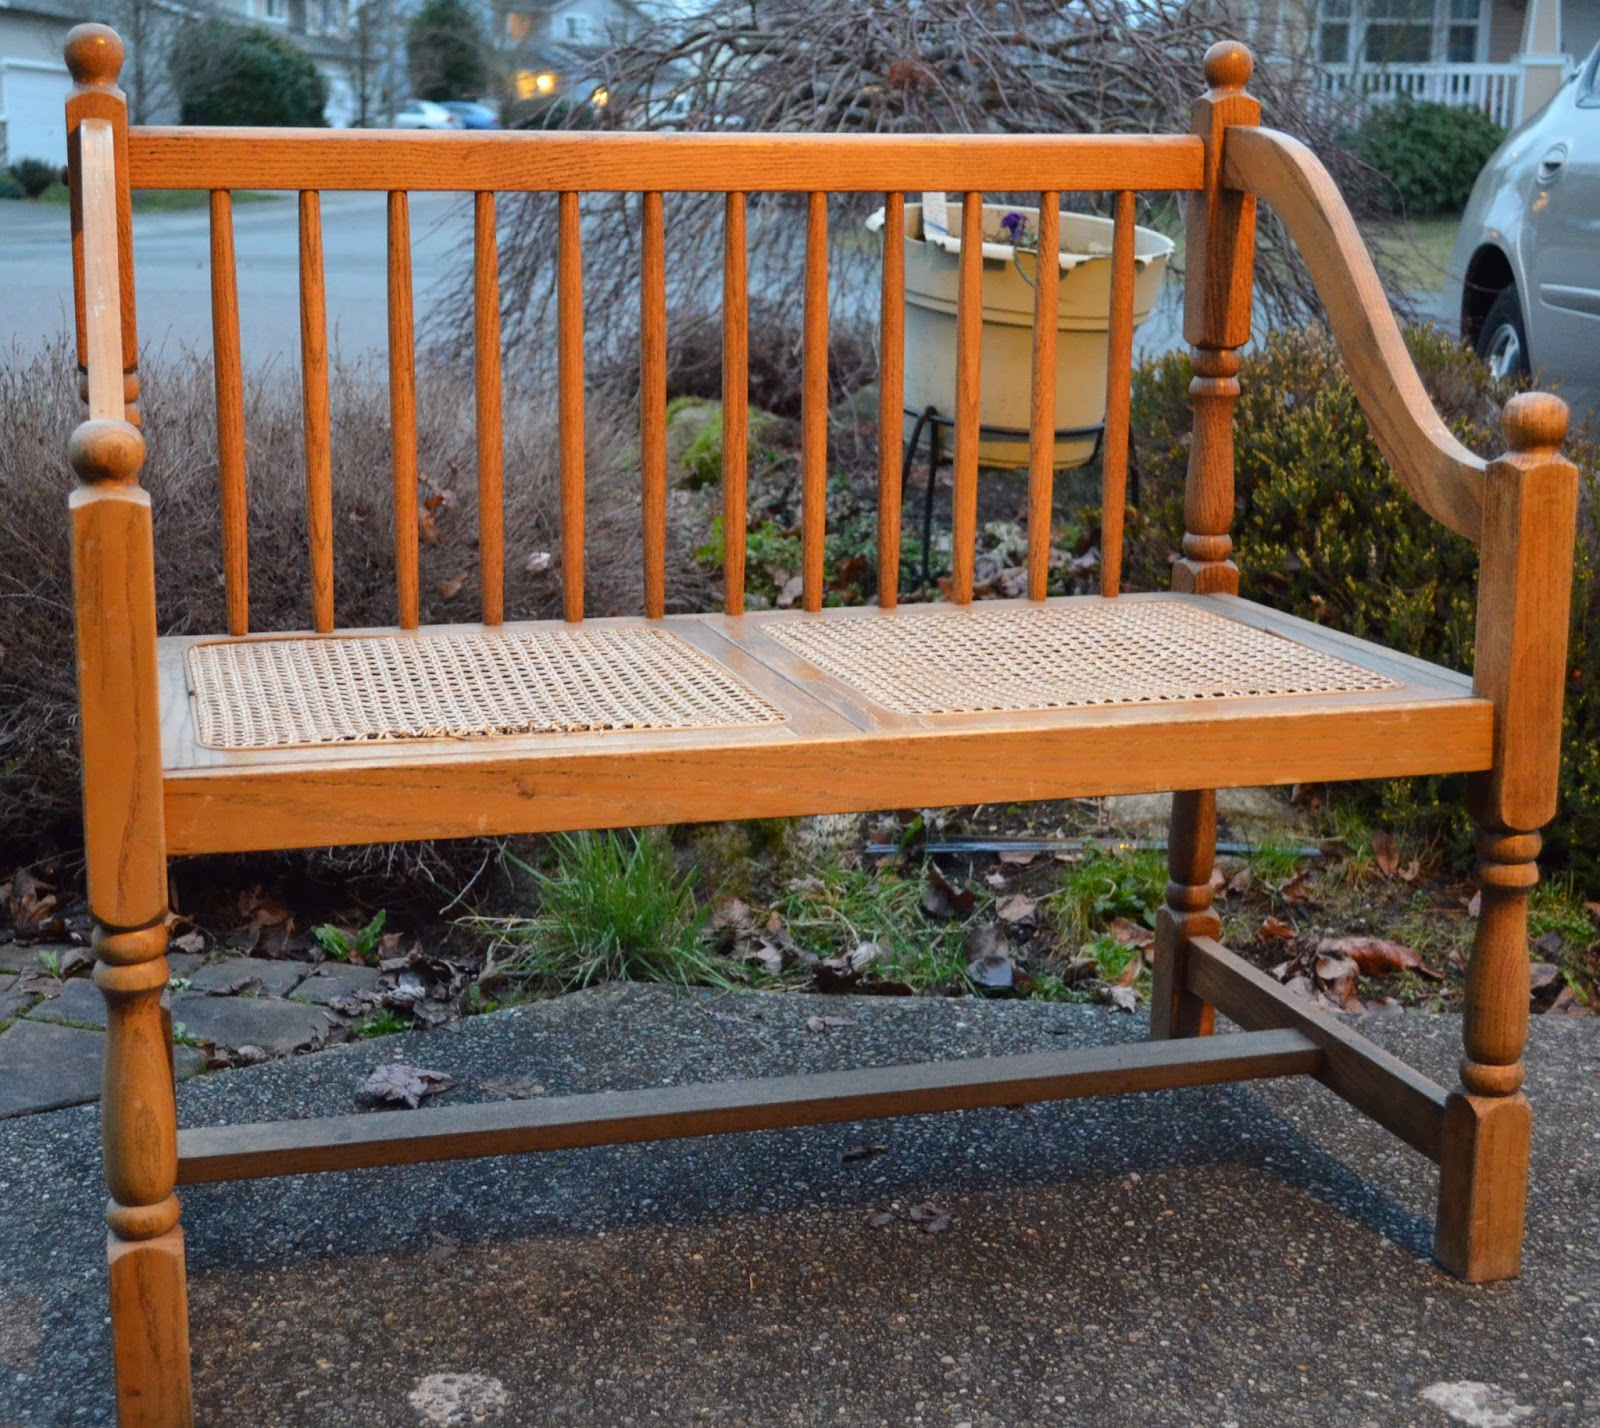 Wicker Seat Bench Vintage Roundabout